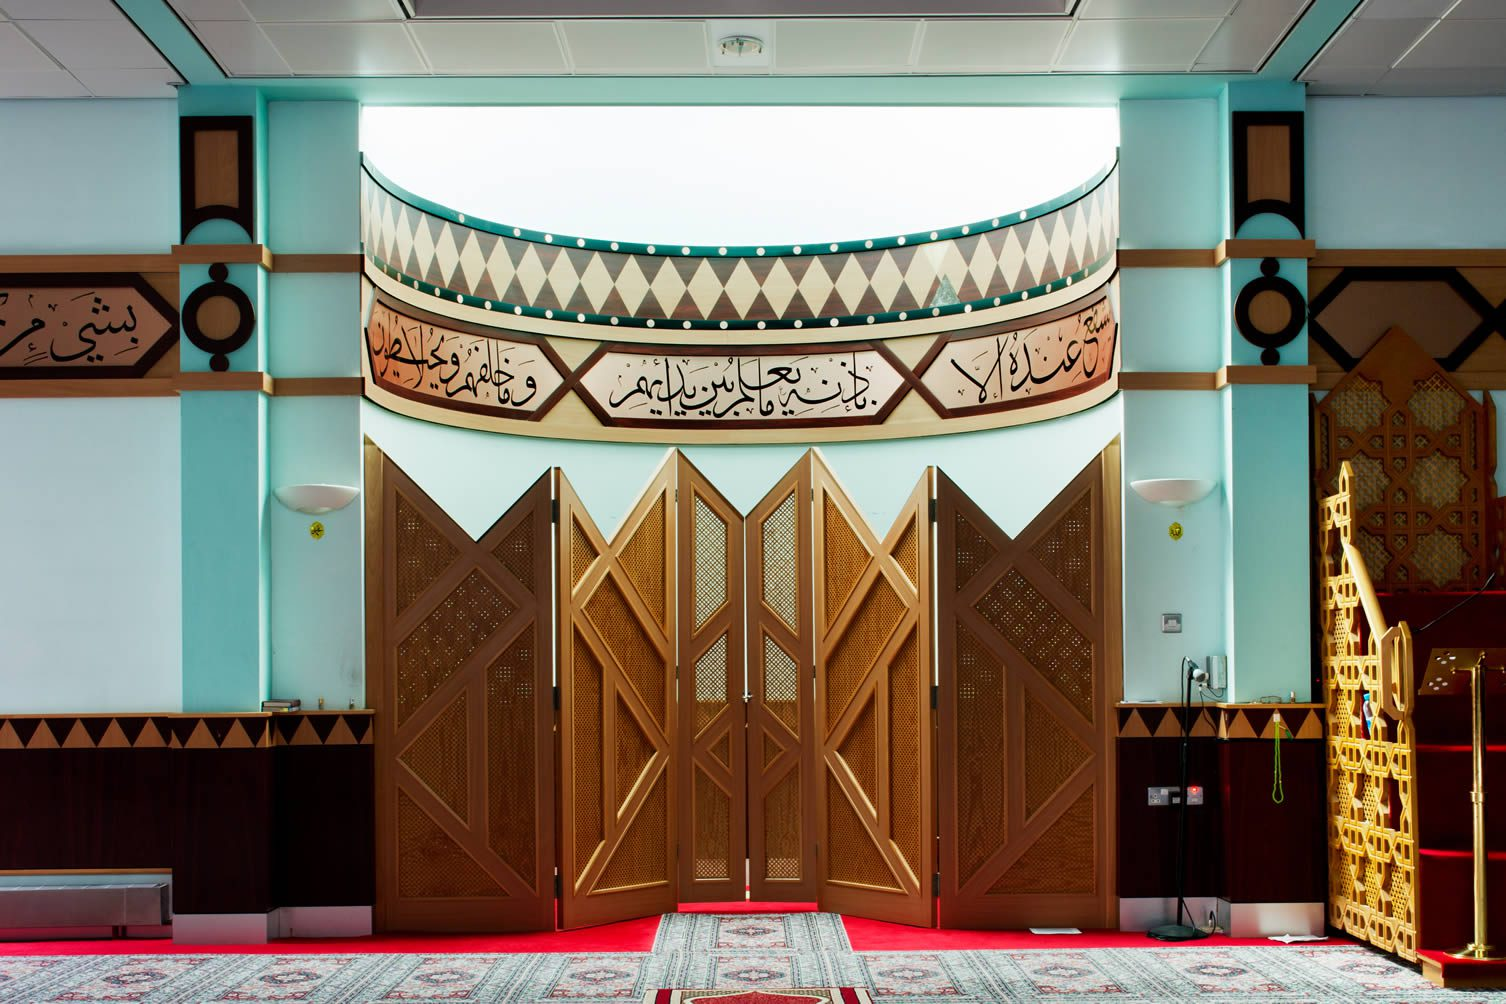 British Mosque Architecture and Design: An architectural and social